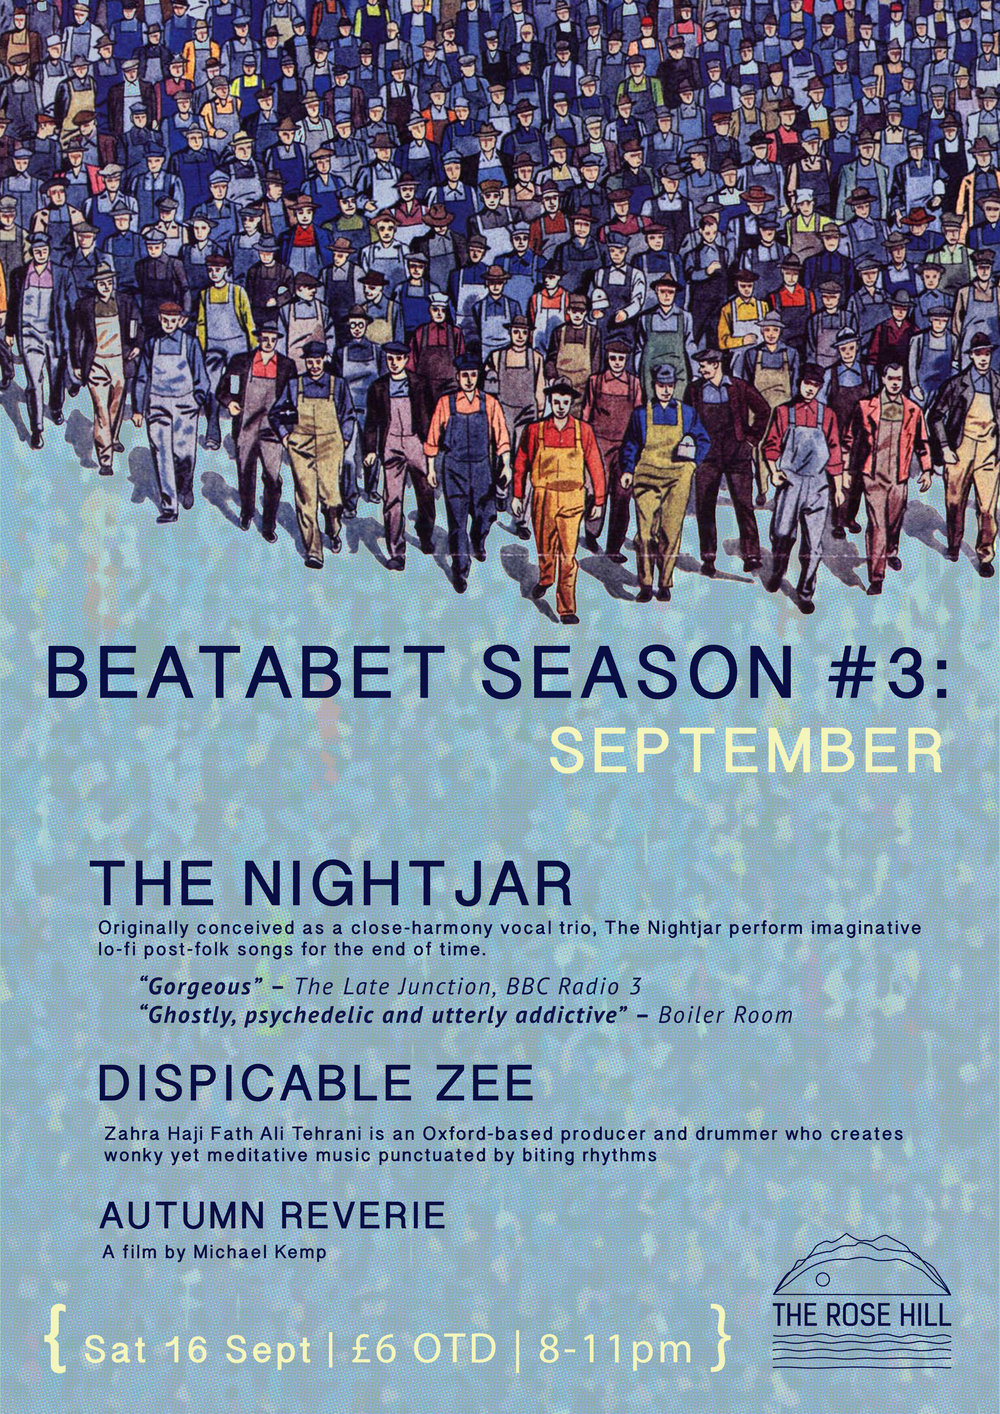 BEatabet Season 3 SEPT POSTER.jpg